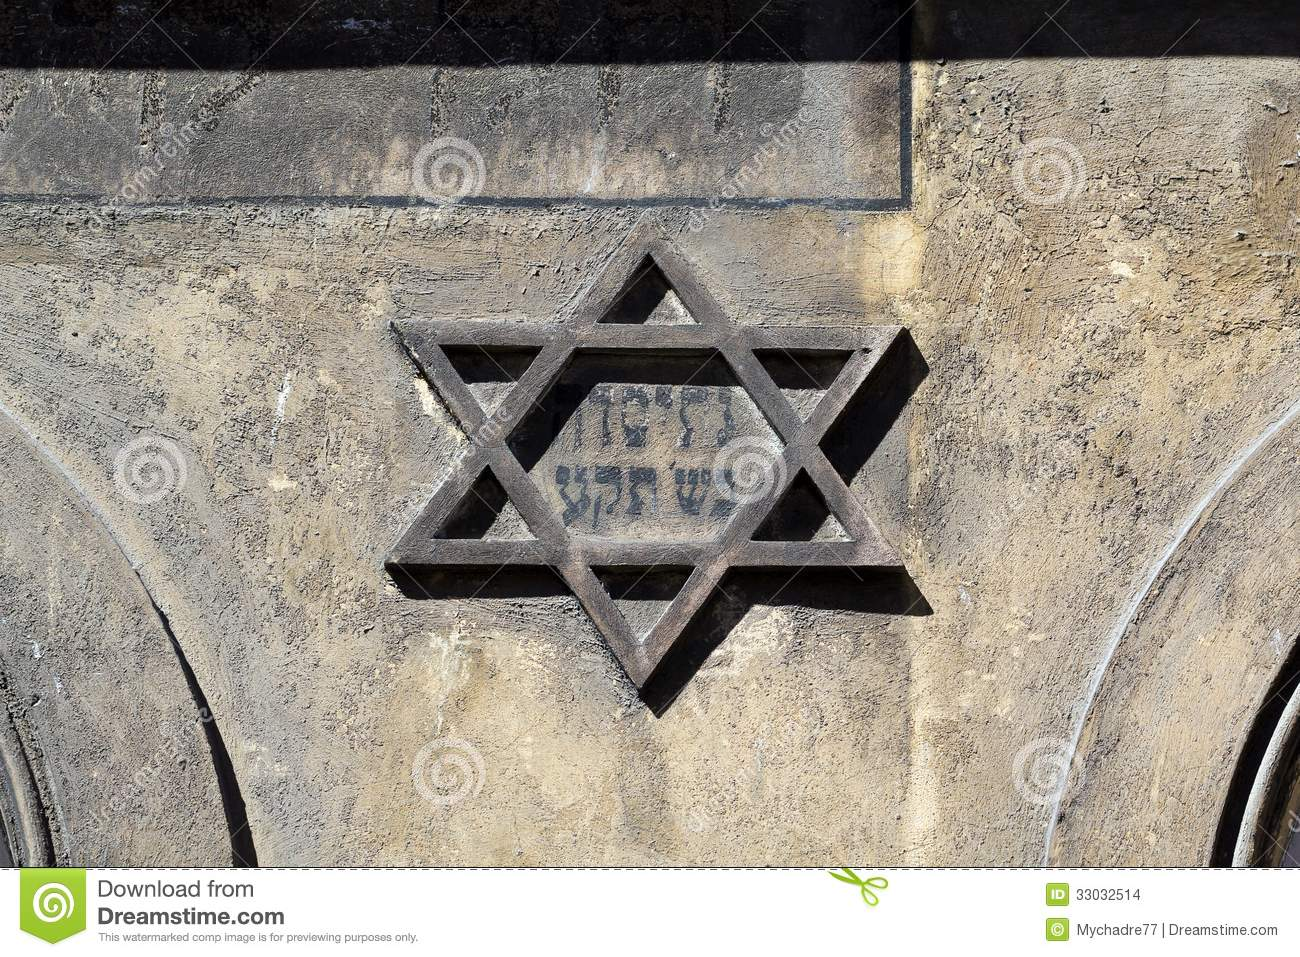 Symbol of jewish star of david on the front on old building in symbol of jewish star of david on the front on old building in kazimierz district of krakow in poland biocorpaavc Choice Image